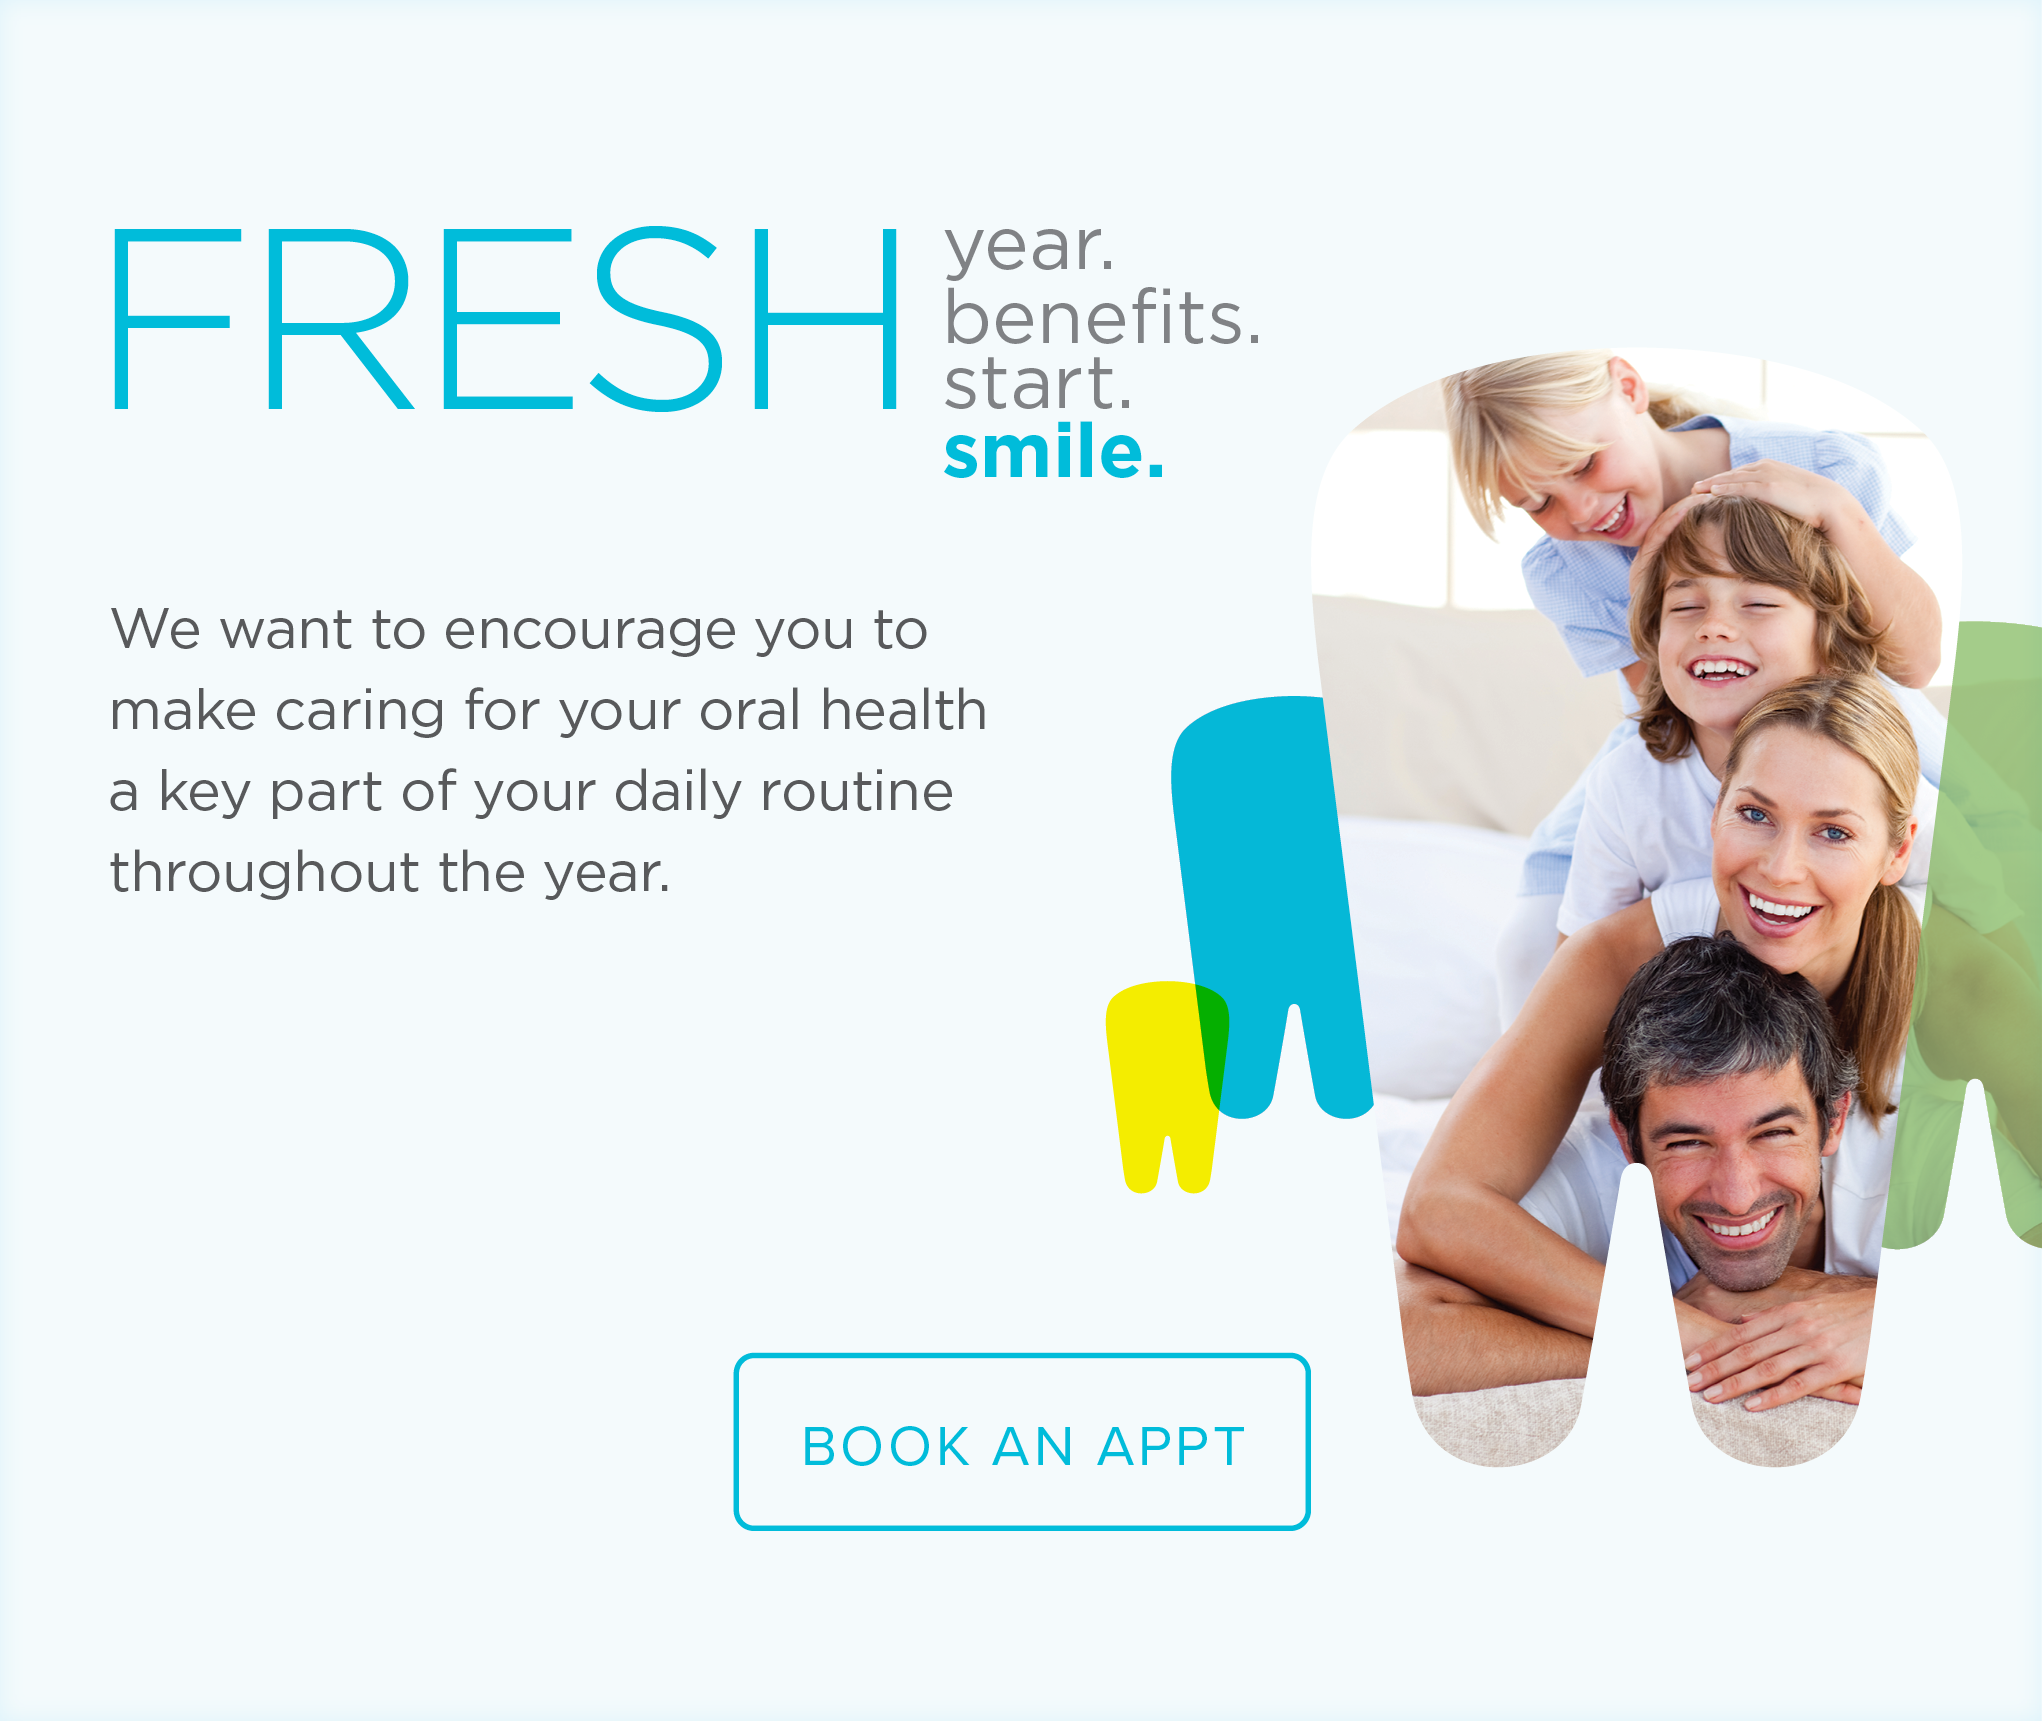 Pacific Harbor Dental Group and Orthodontics - Make the Most of Your Benefits